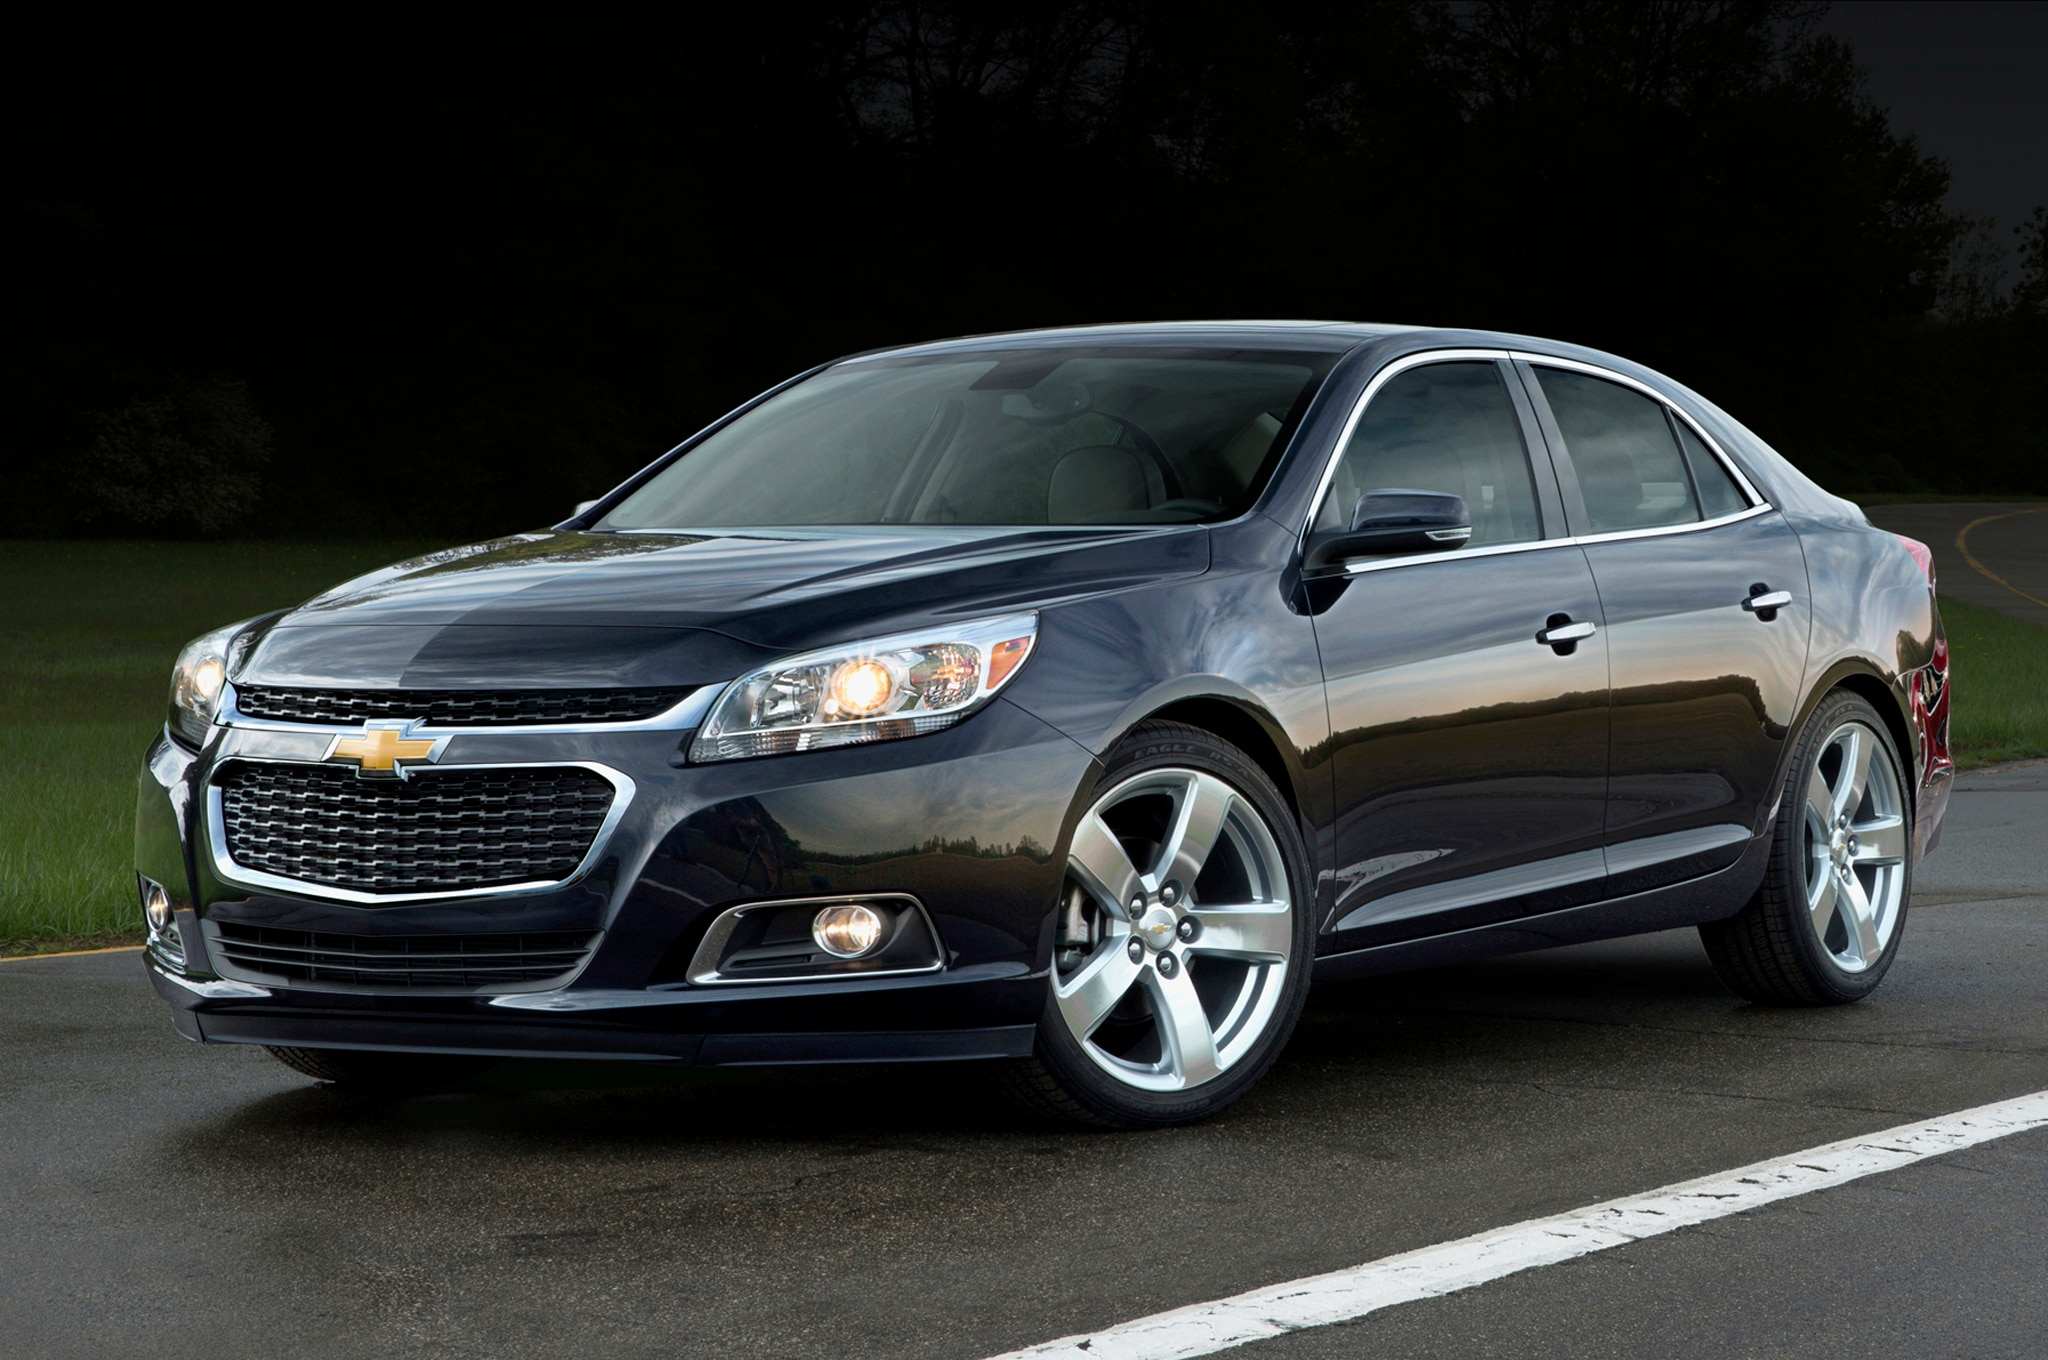 2014 Chevrolet Malibu Front Three Quarters1